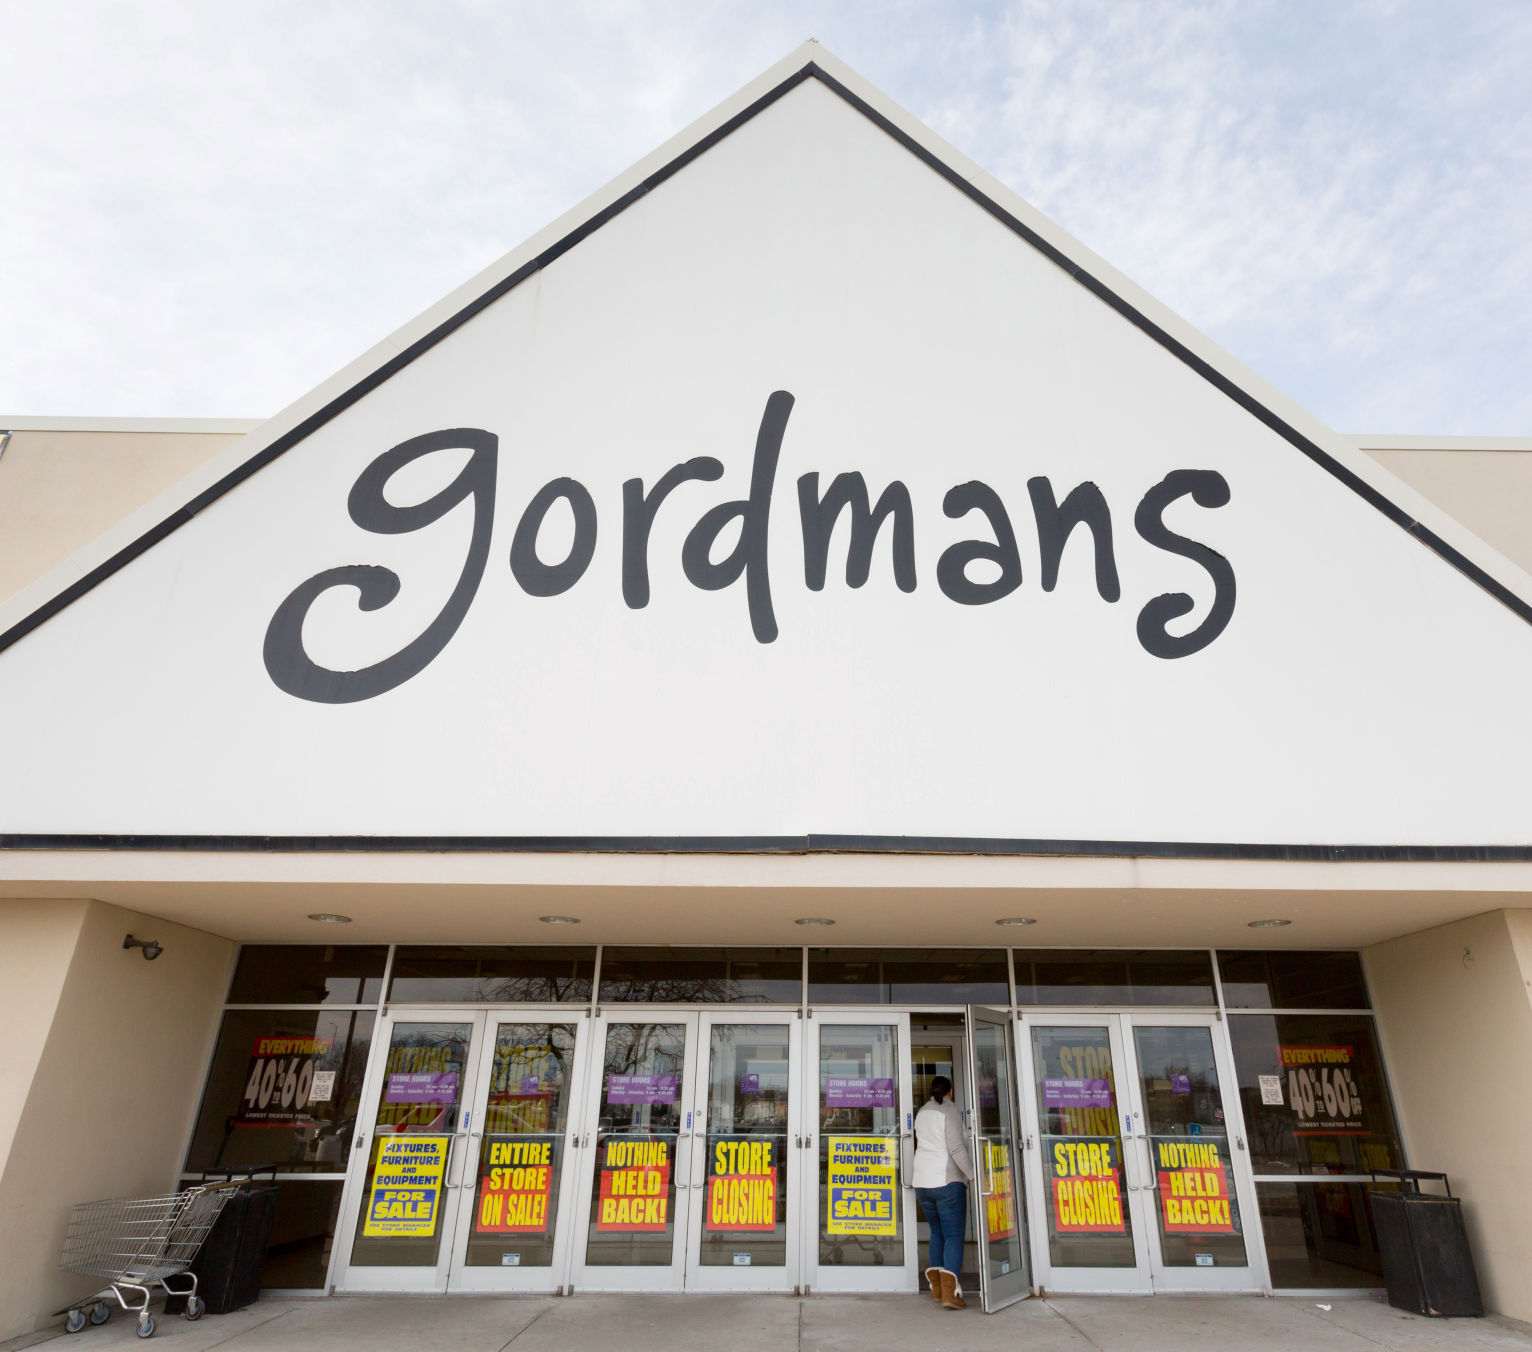 Stage Stores, Winner In Gordmans Bankruptcy Auction, Will Operate 50  Locations And Keep Open Omaha Distribution Center | Money | Omaha.com